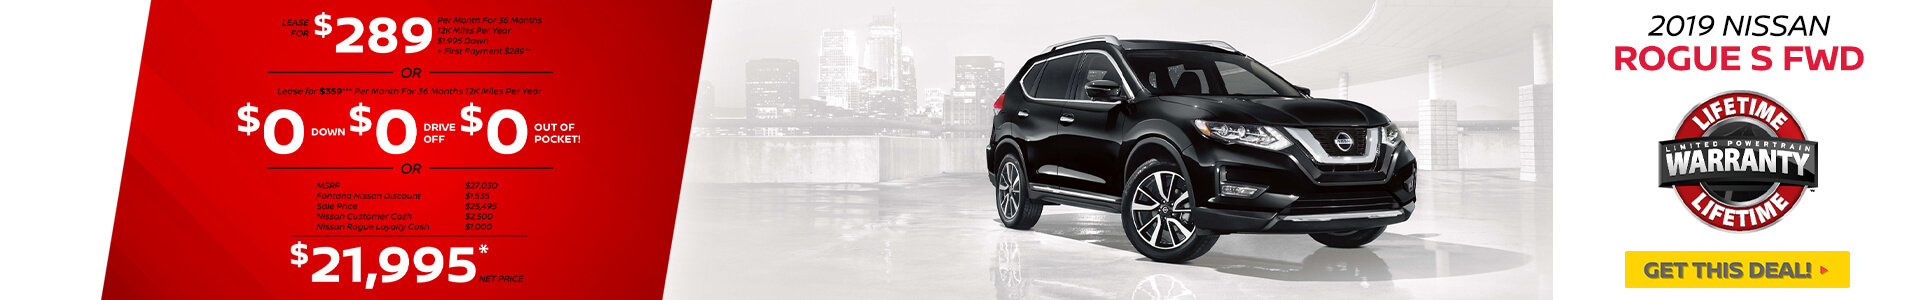 Nissan Rogue $289 Lease